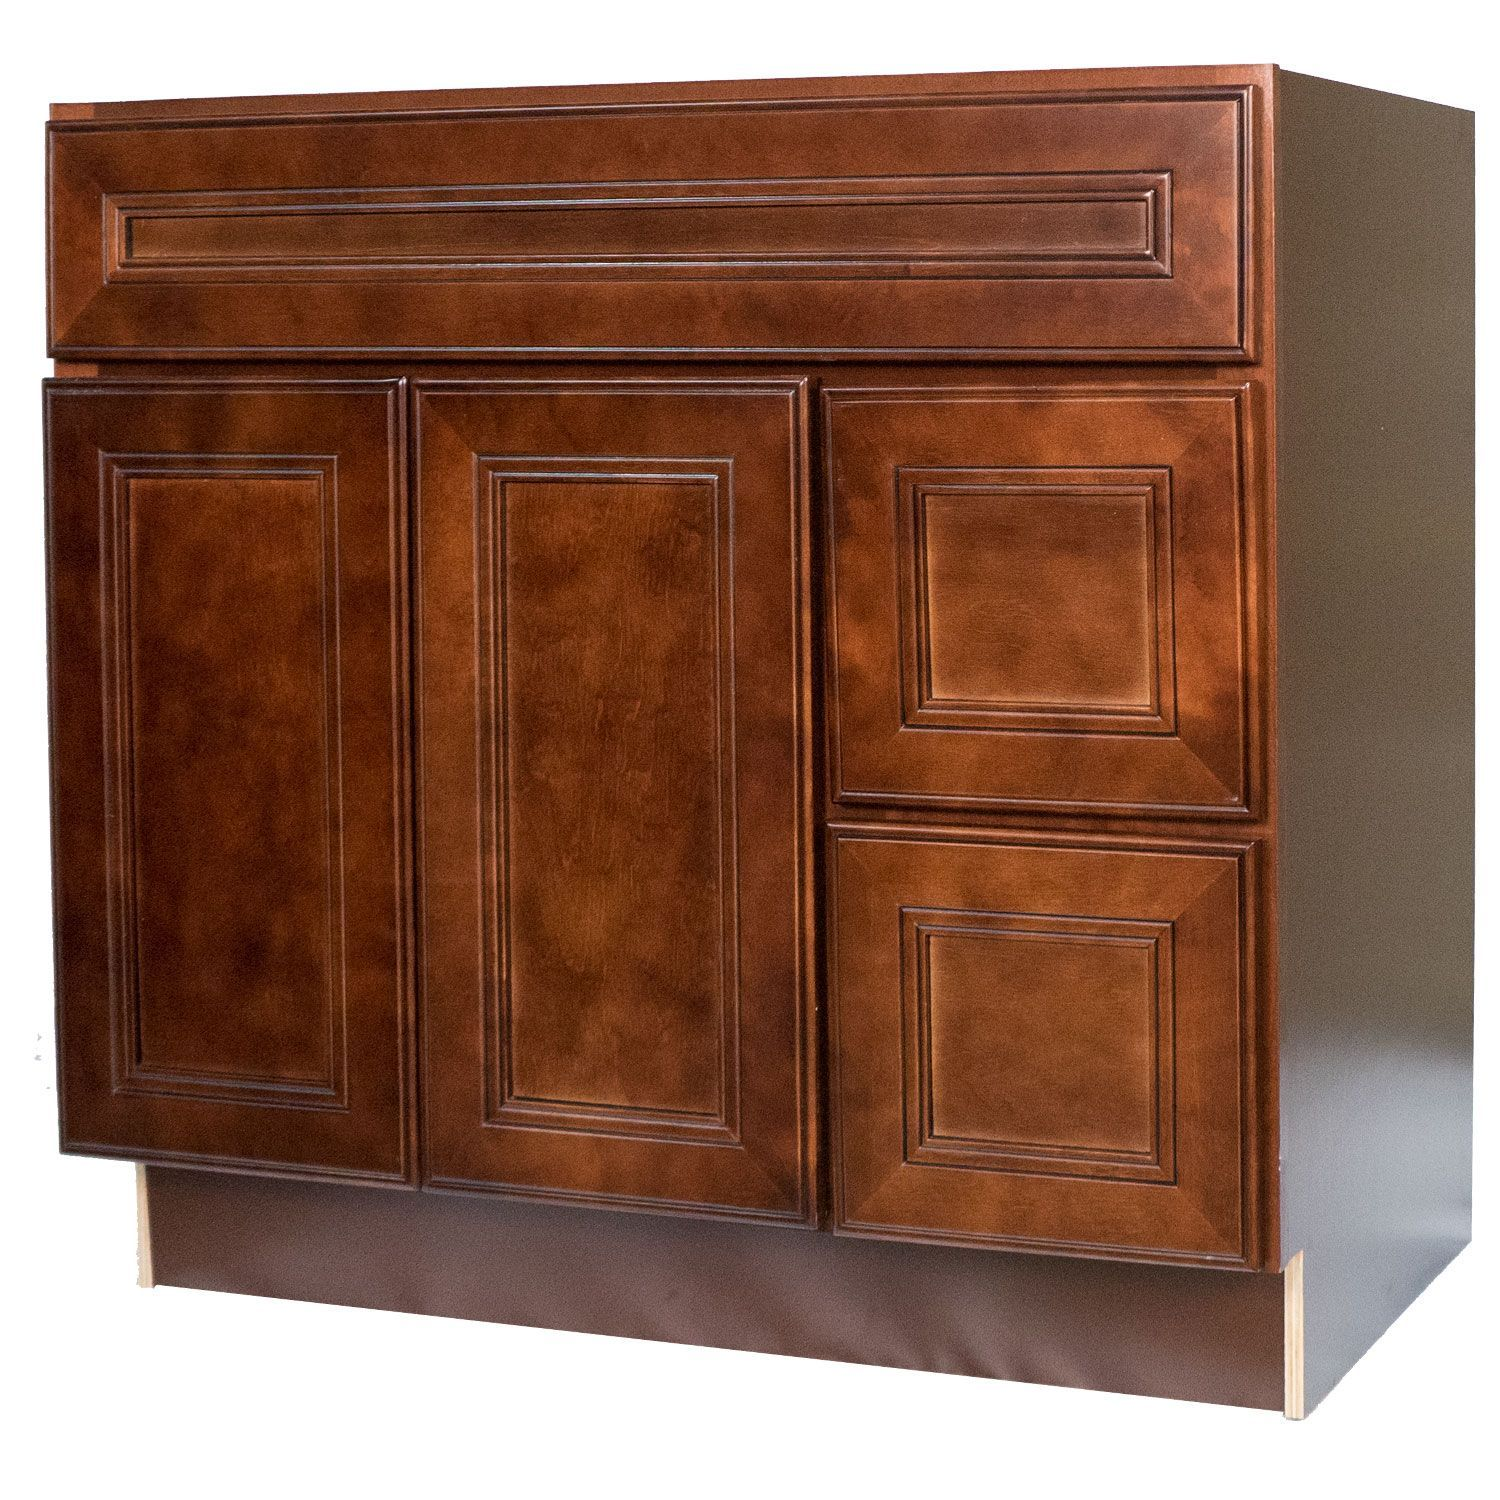 36 Inch Bathroom Vanity Single Sink Cabinet in Leo Saddle Dark